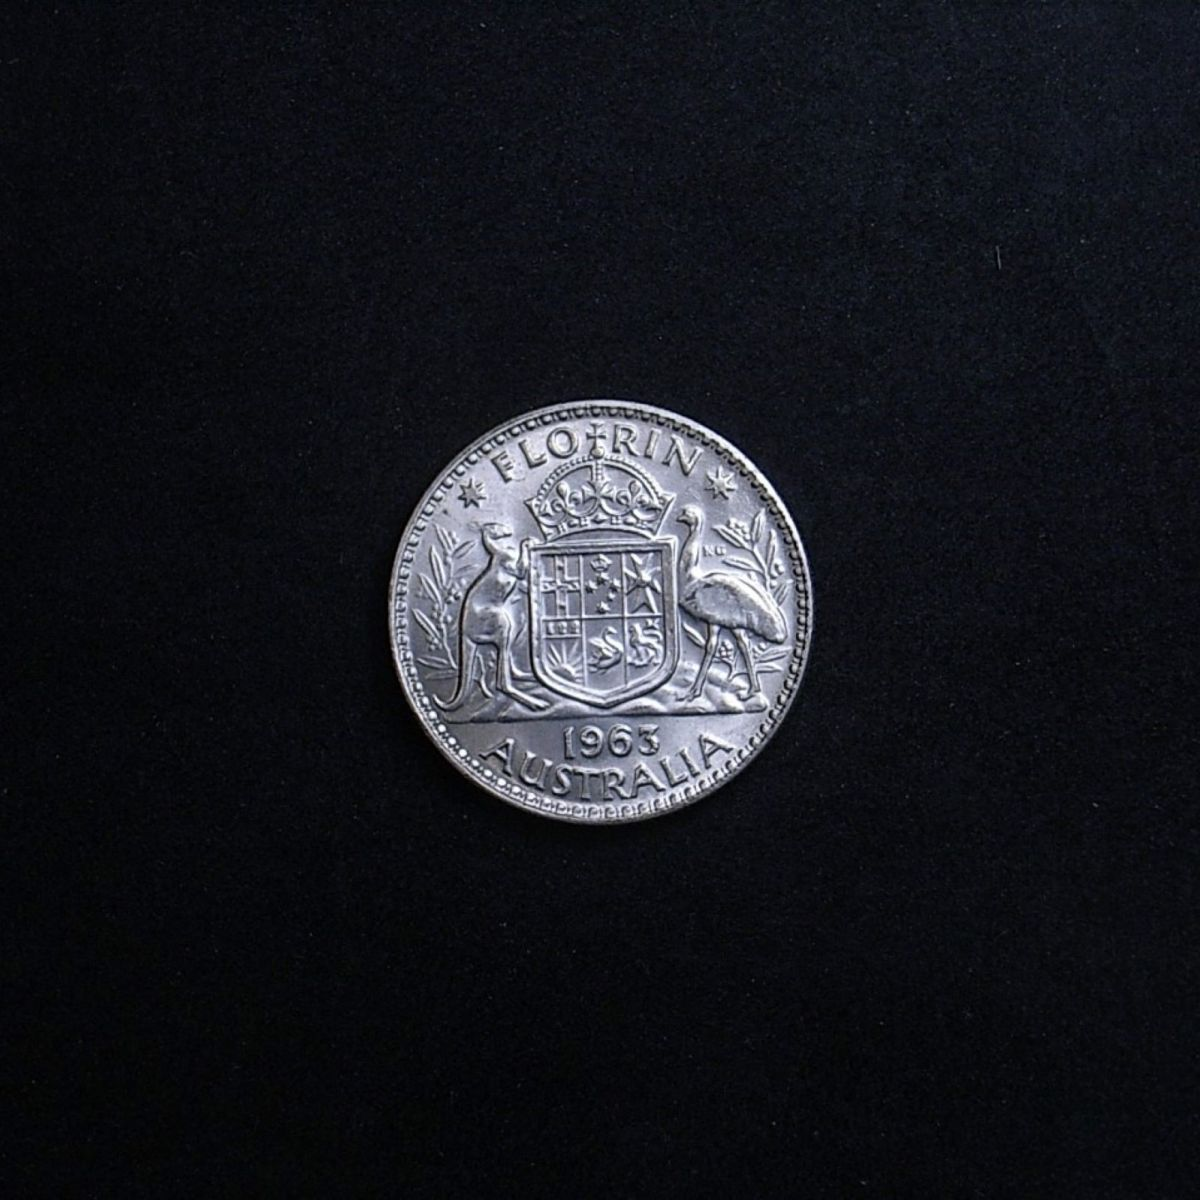 Aussie florin 1963 reverse highlighting the coin's lustre